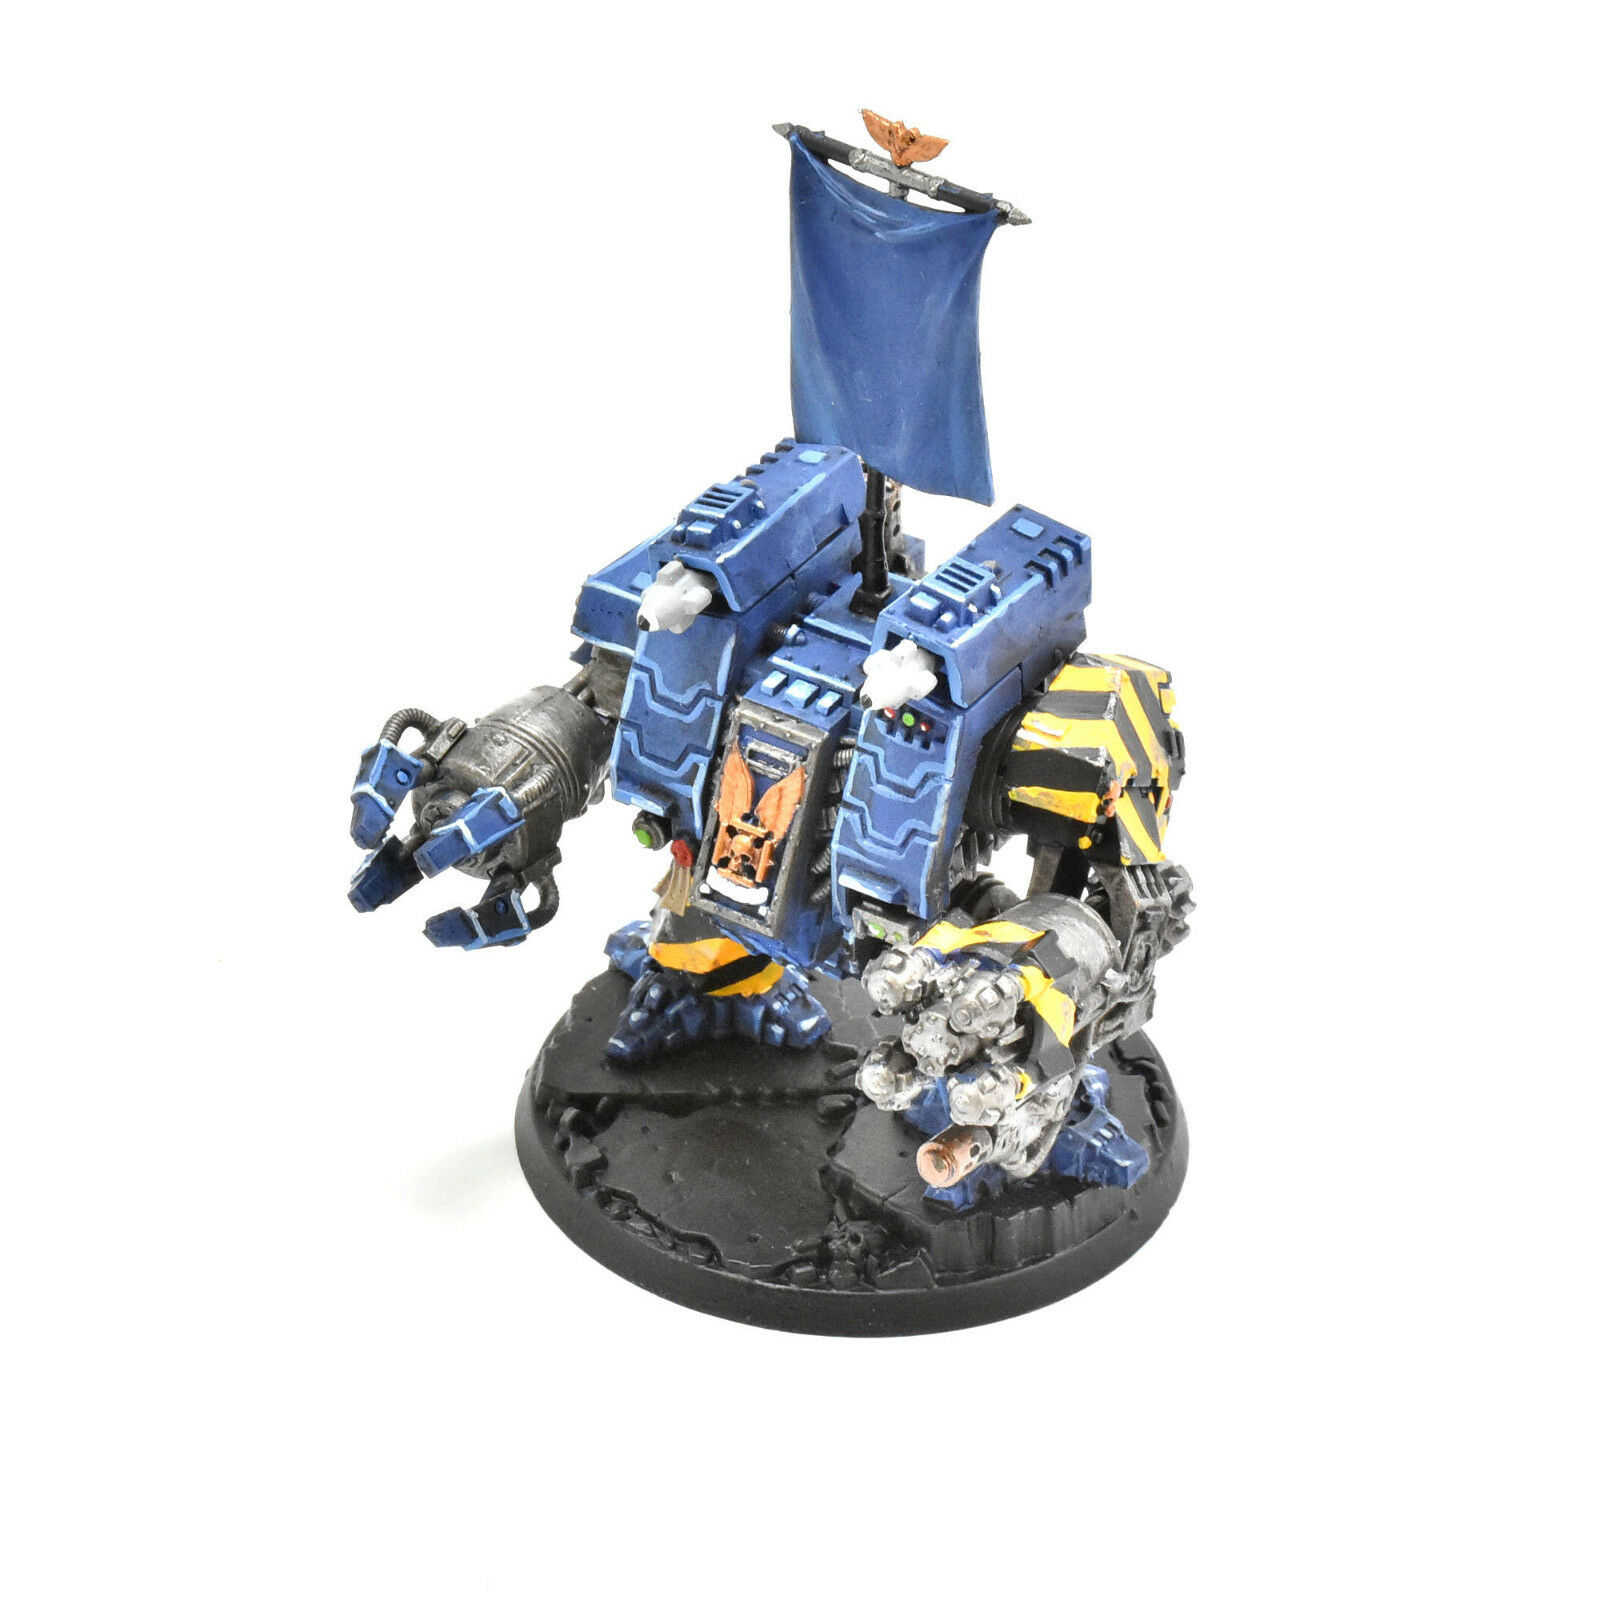 SPACE MARINES ironclad dreadnought WELL PAINTED Warhammer 40K